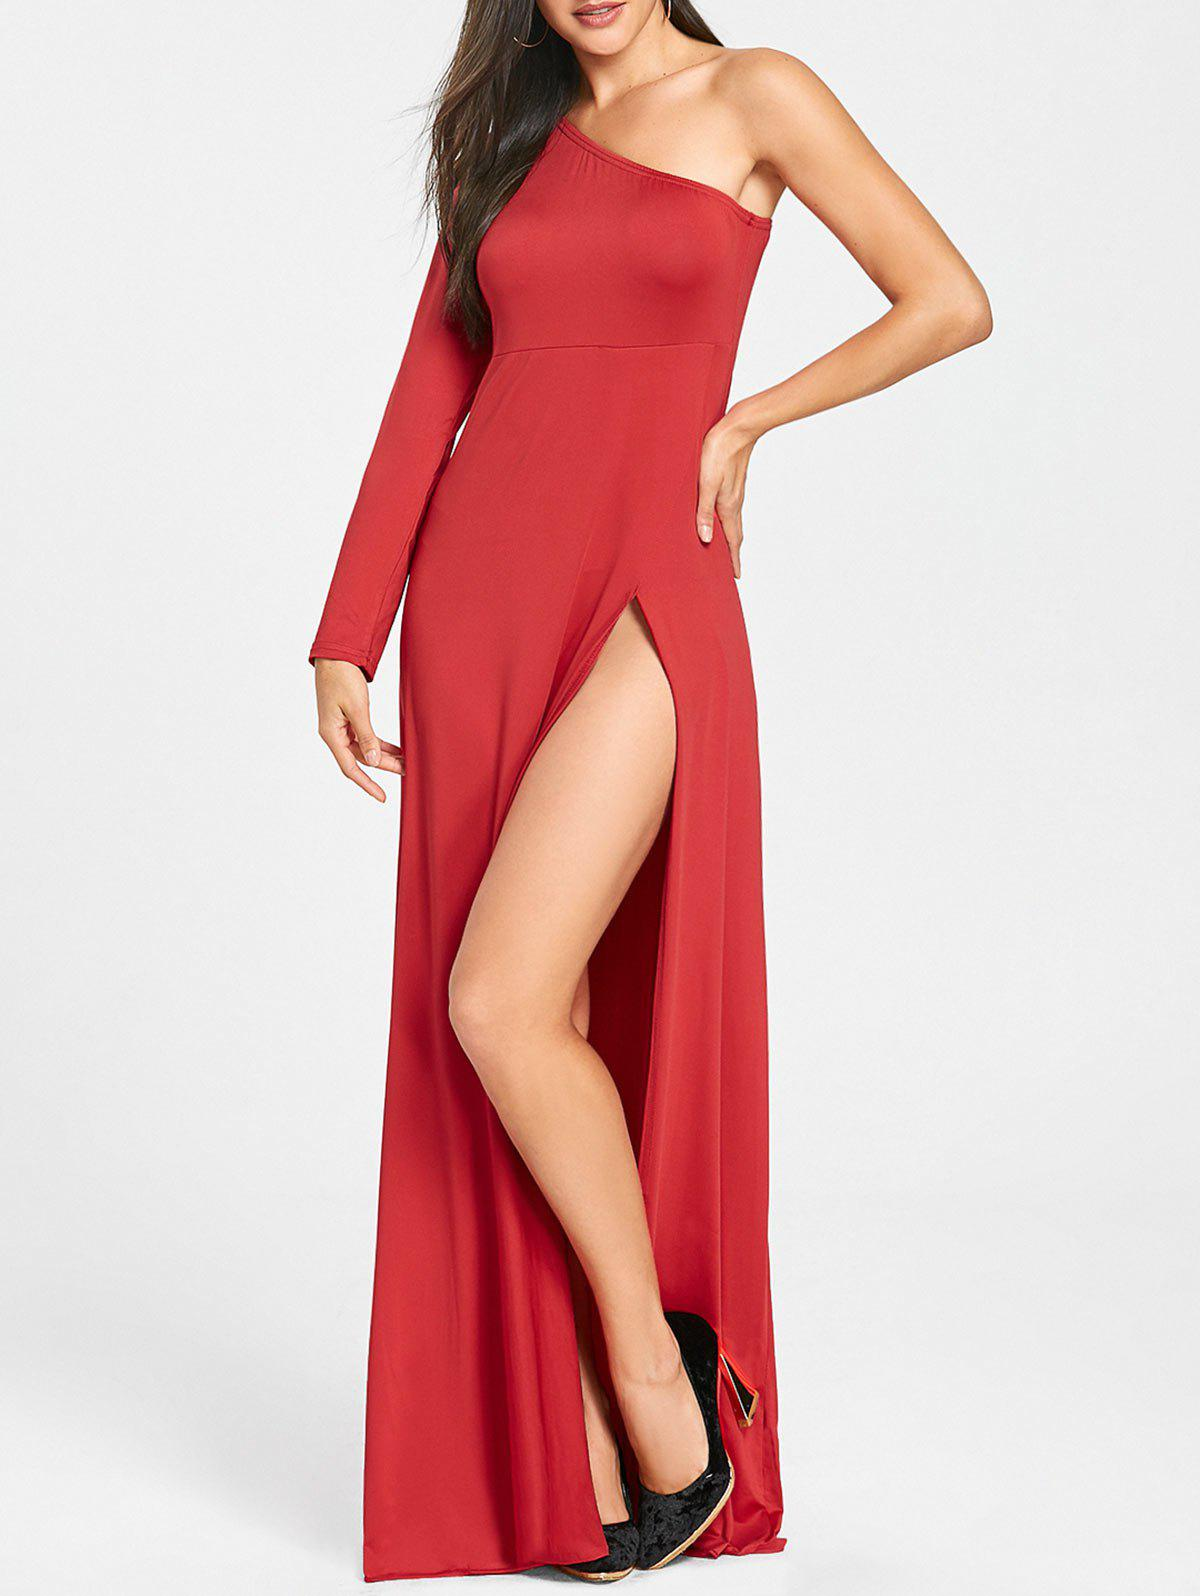 High Slit Empire Waist One Shoulder Dress - RED 2XL